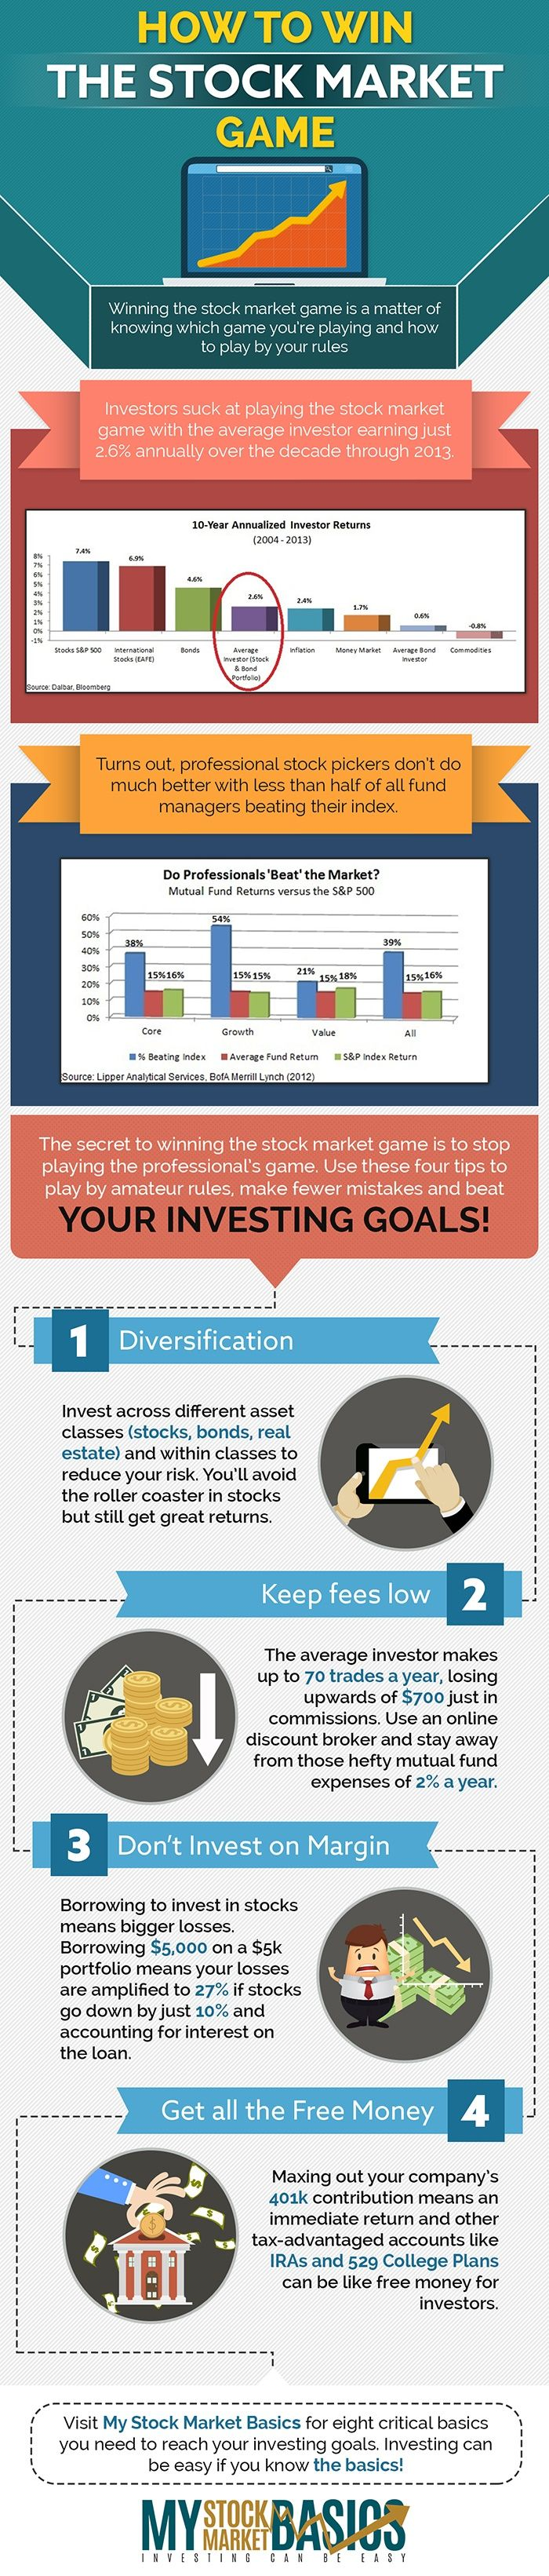 Love Thisgraphic About Smart Investing And Beating The Stock Market  Game Four Easy To Stock Optionspenny Stocksinvesting Moneyhow